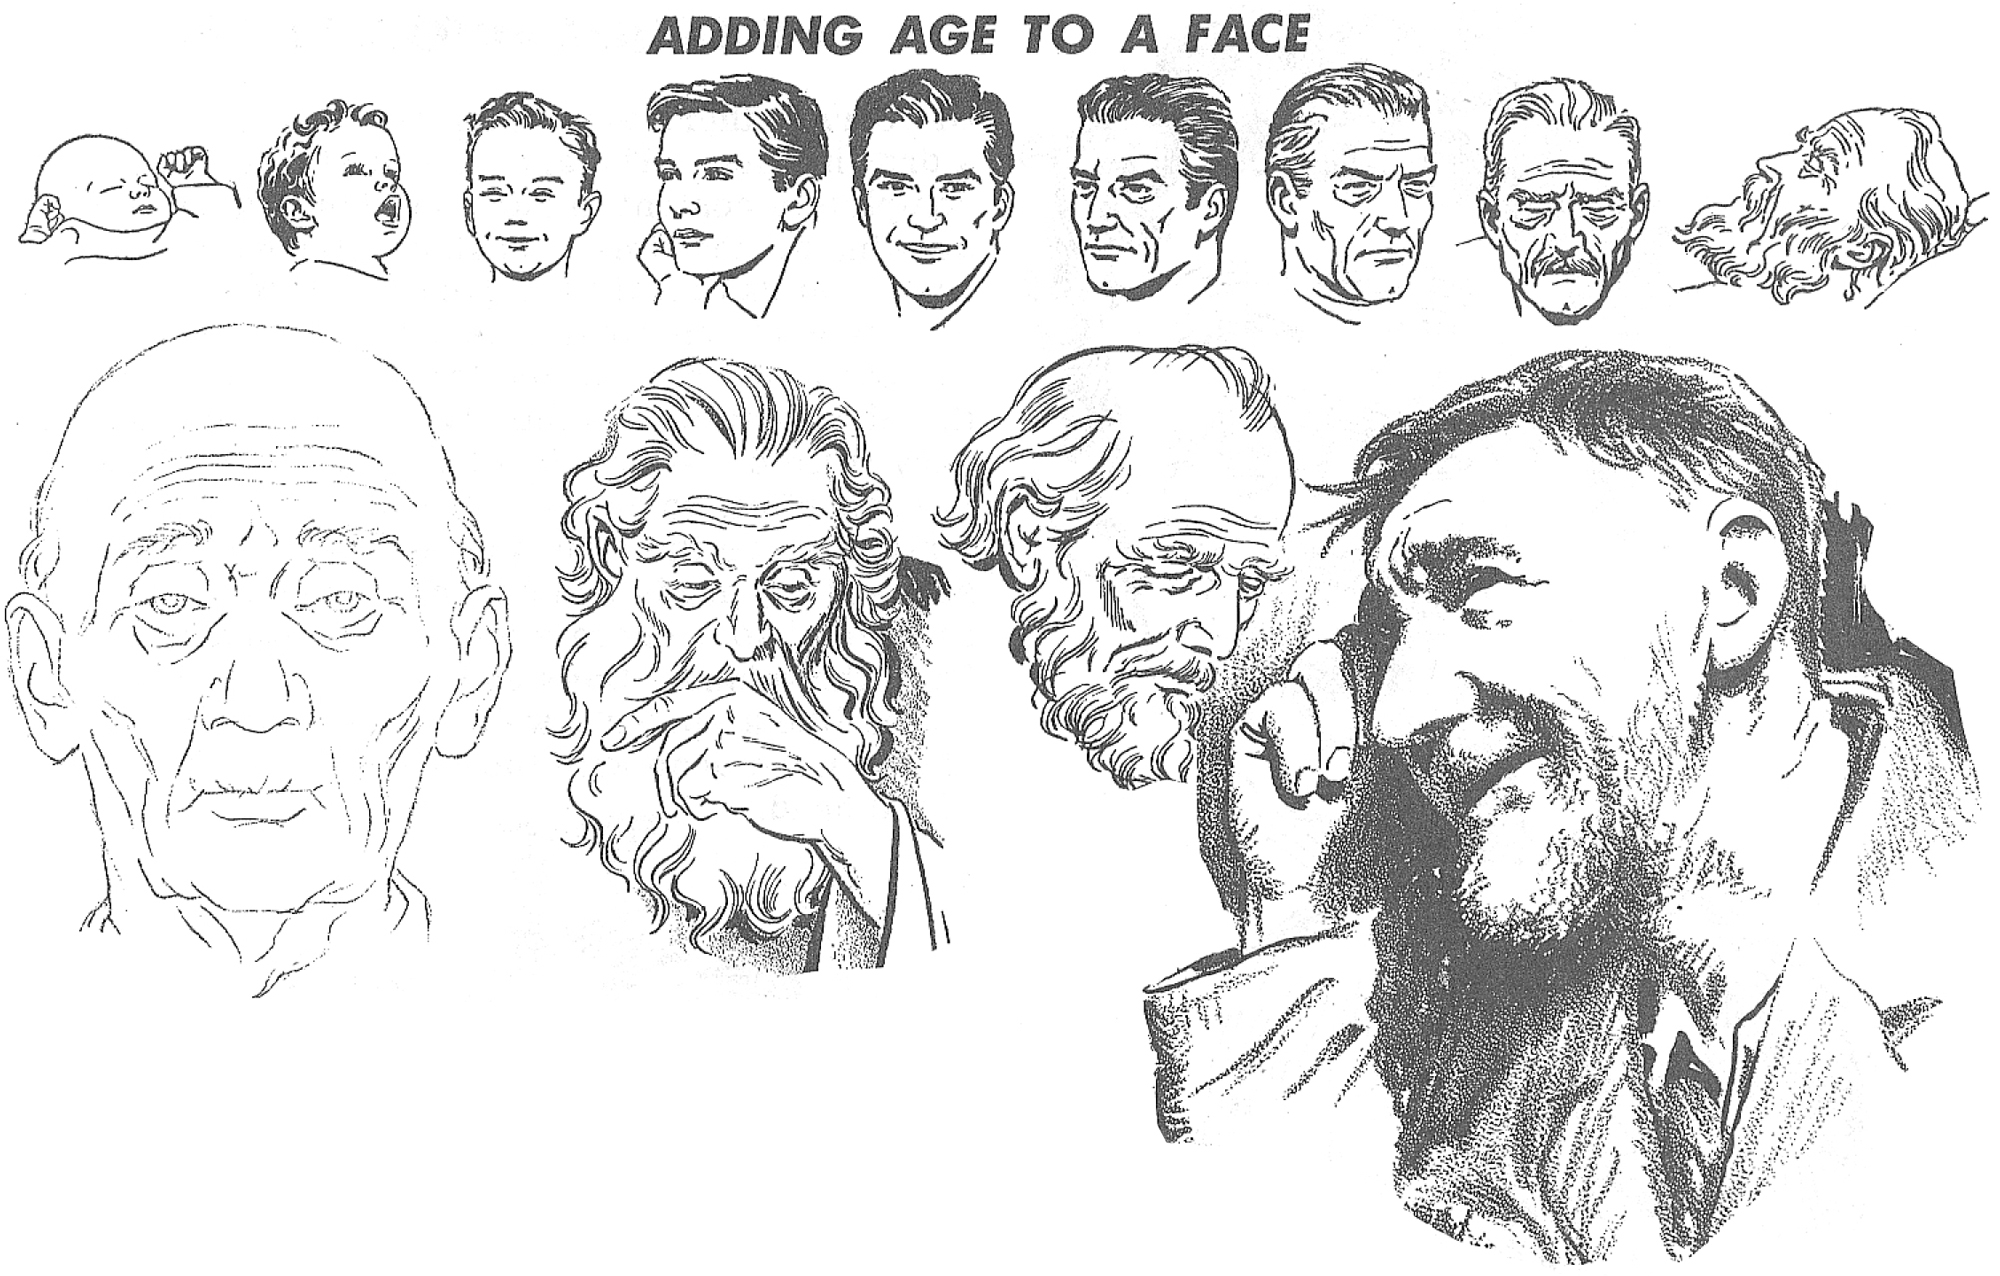 Adding Age to the Face